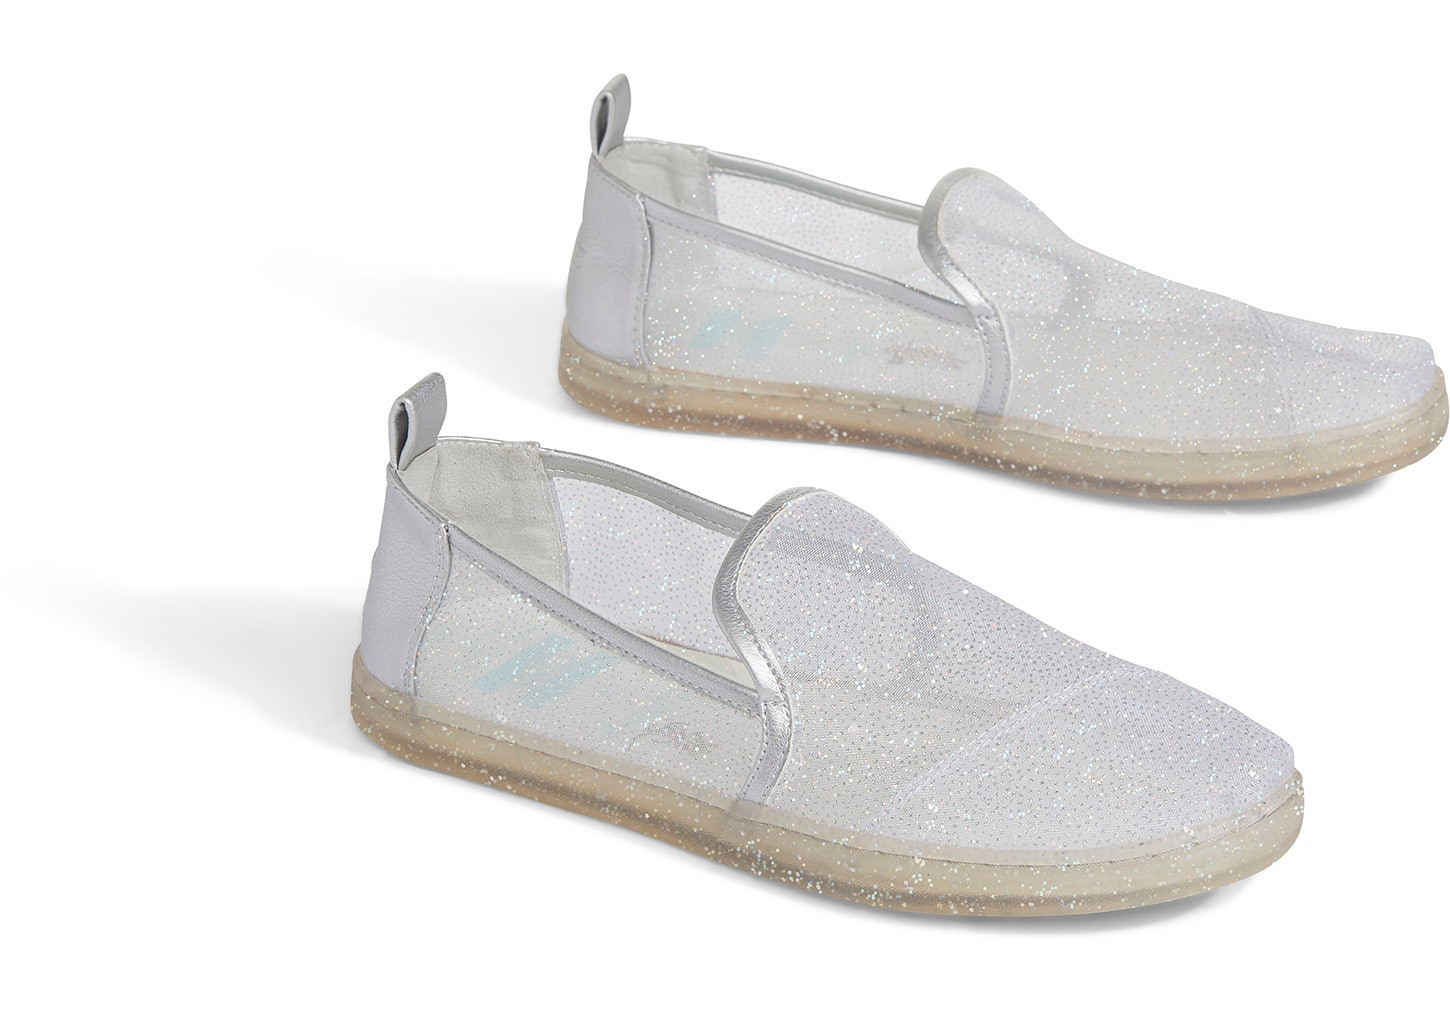 5bdc22e9a34 These TOMS X Disney  Cinderella  Slip-Ons Are The Casual Glass Slipper  Fairy Tales Are Made Of